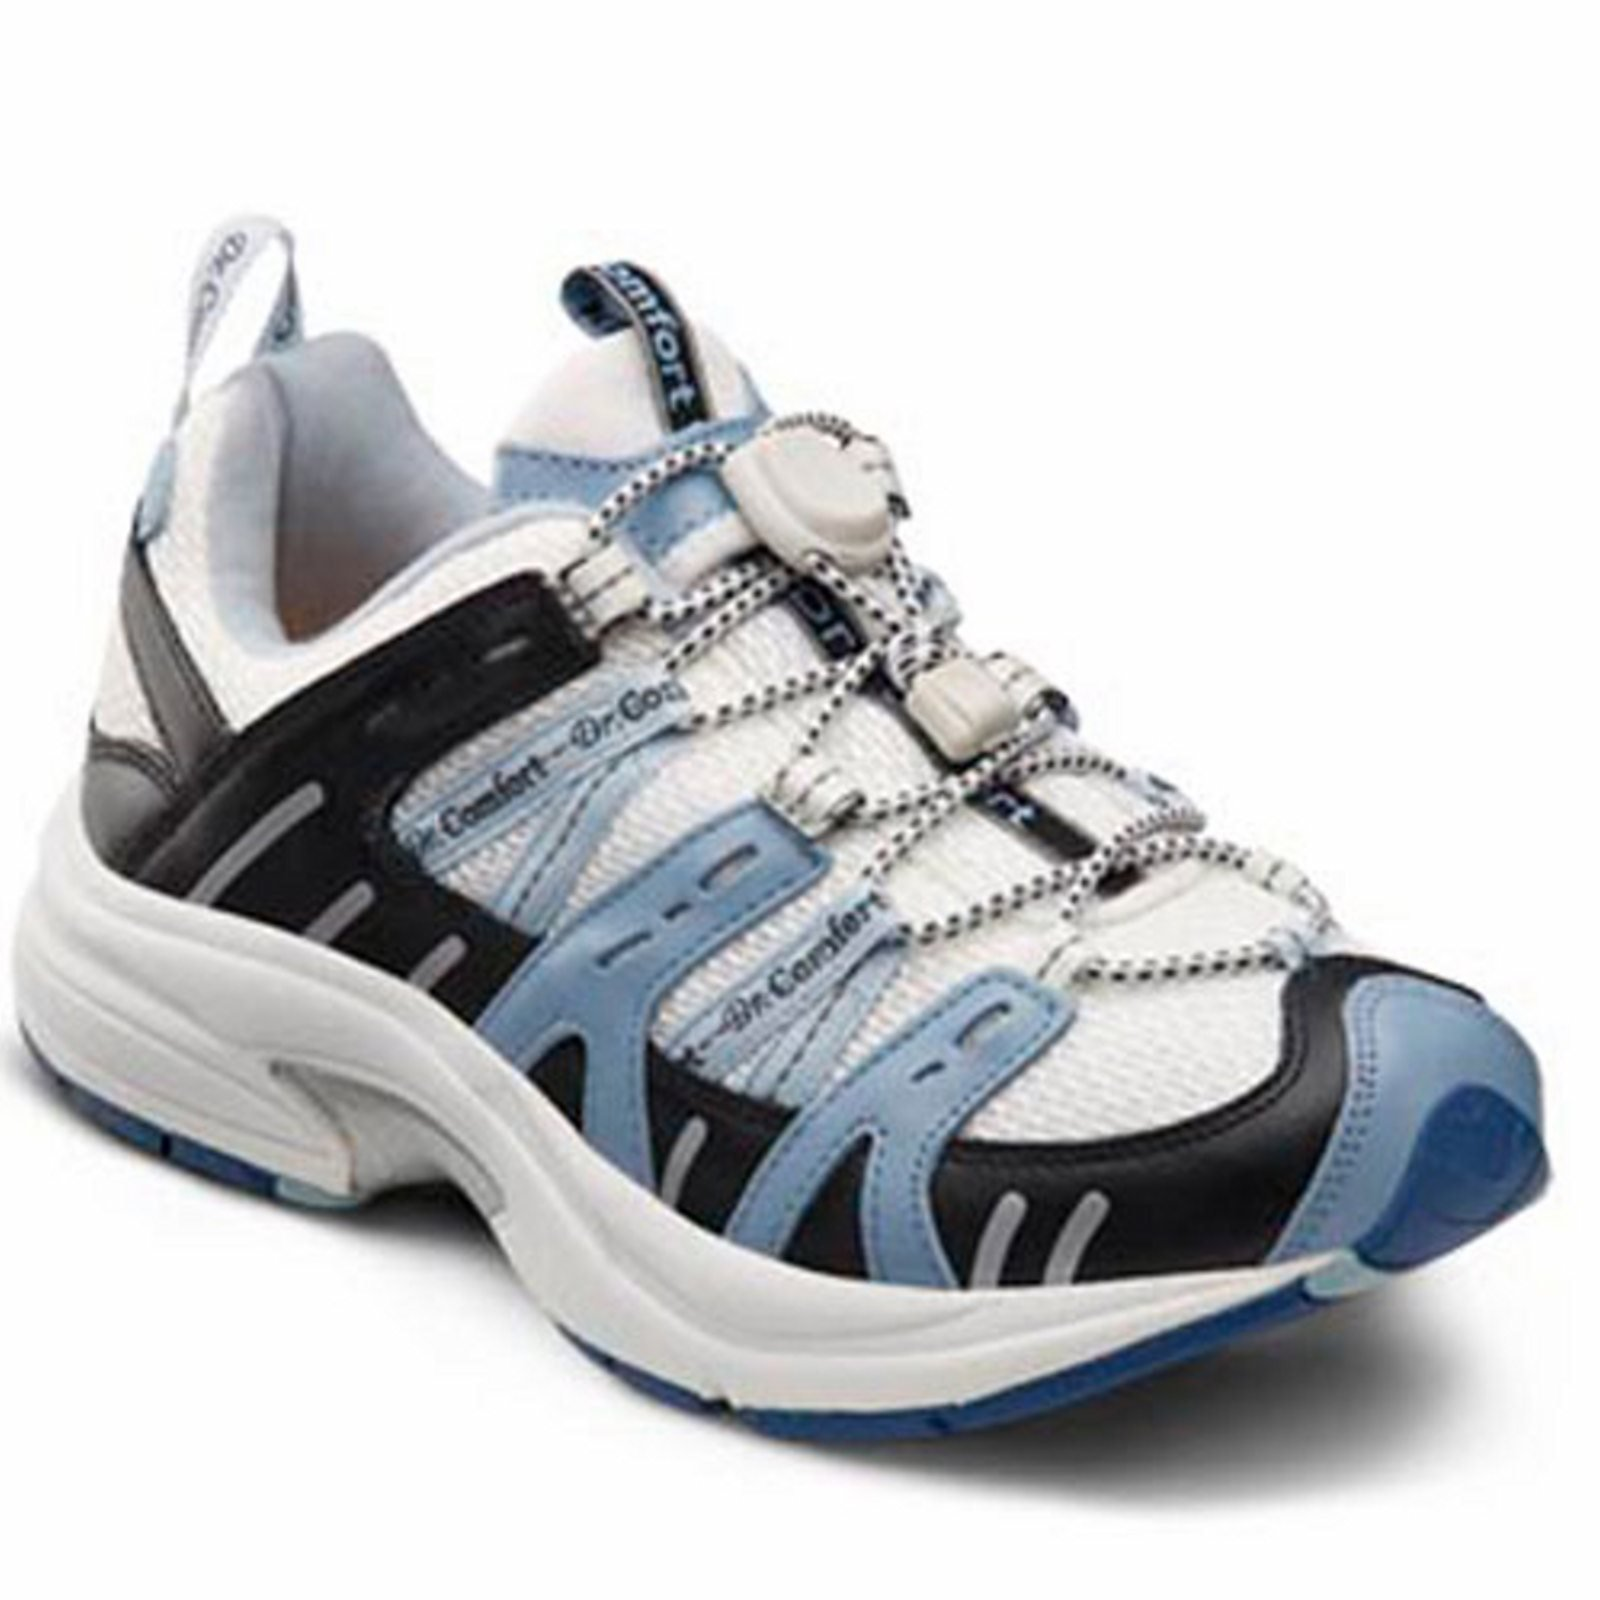 Dr. Comfort Refresh Women's Therapeutic Athletic Shoe: Blue 8.5 X-Wide (E/EE) Elastic & Standard Laces